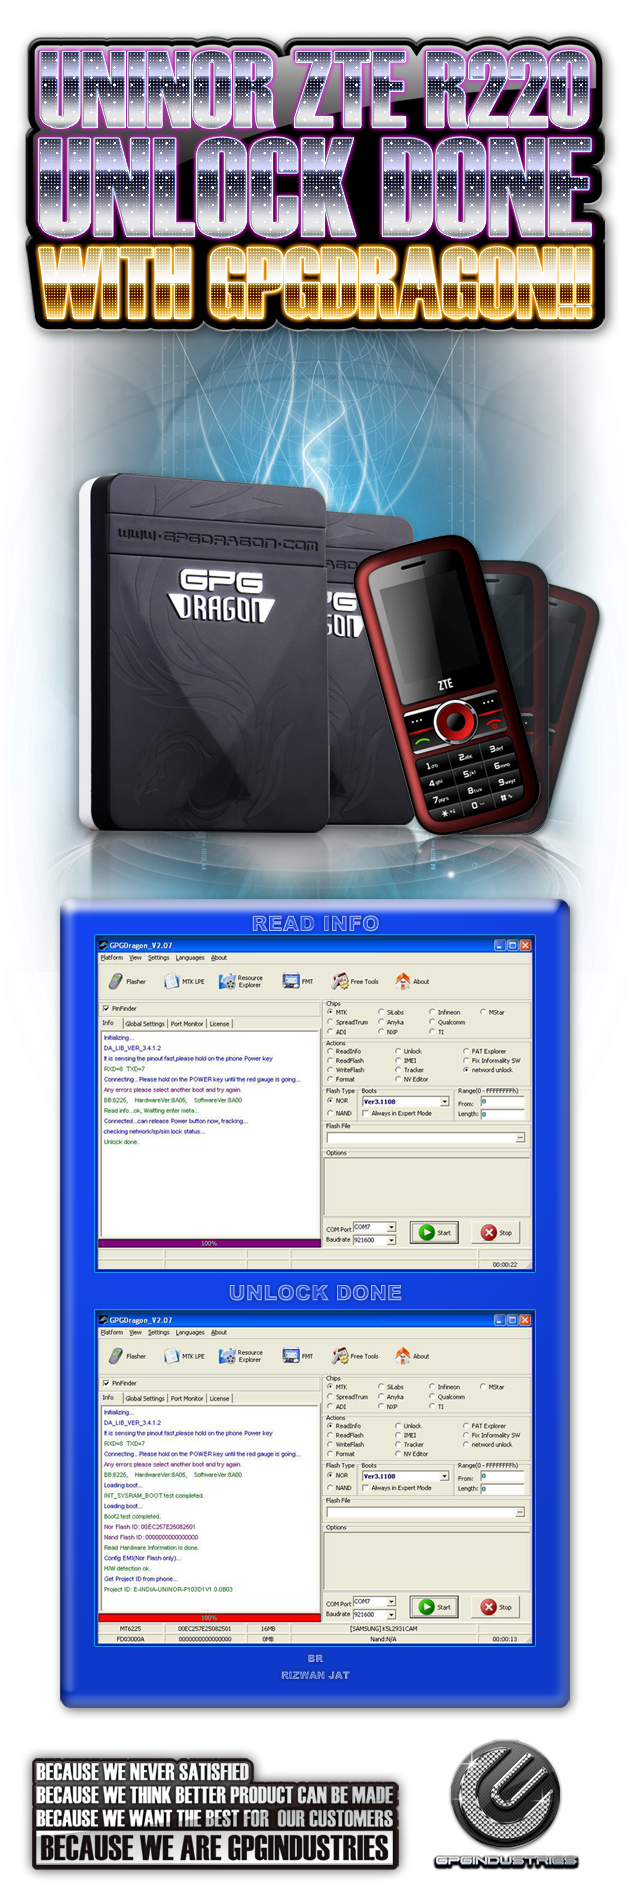 2121UNINOR ZTE R220 Unlock Done With GPGDRAGON2121 630